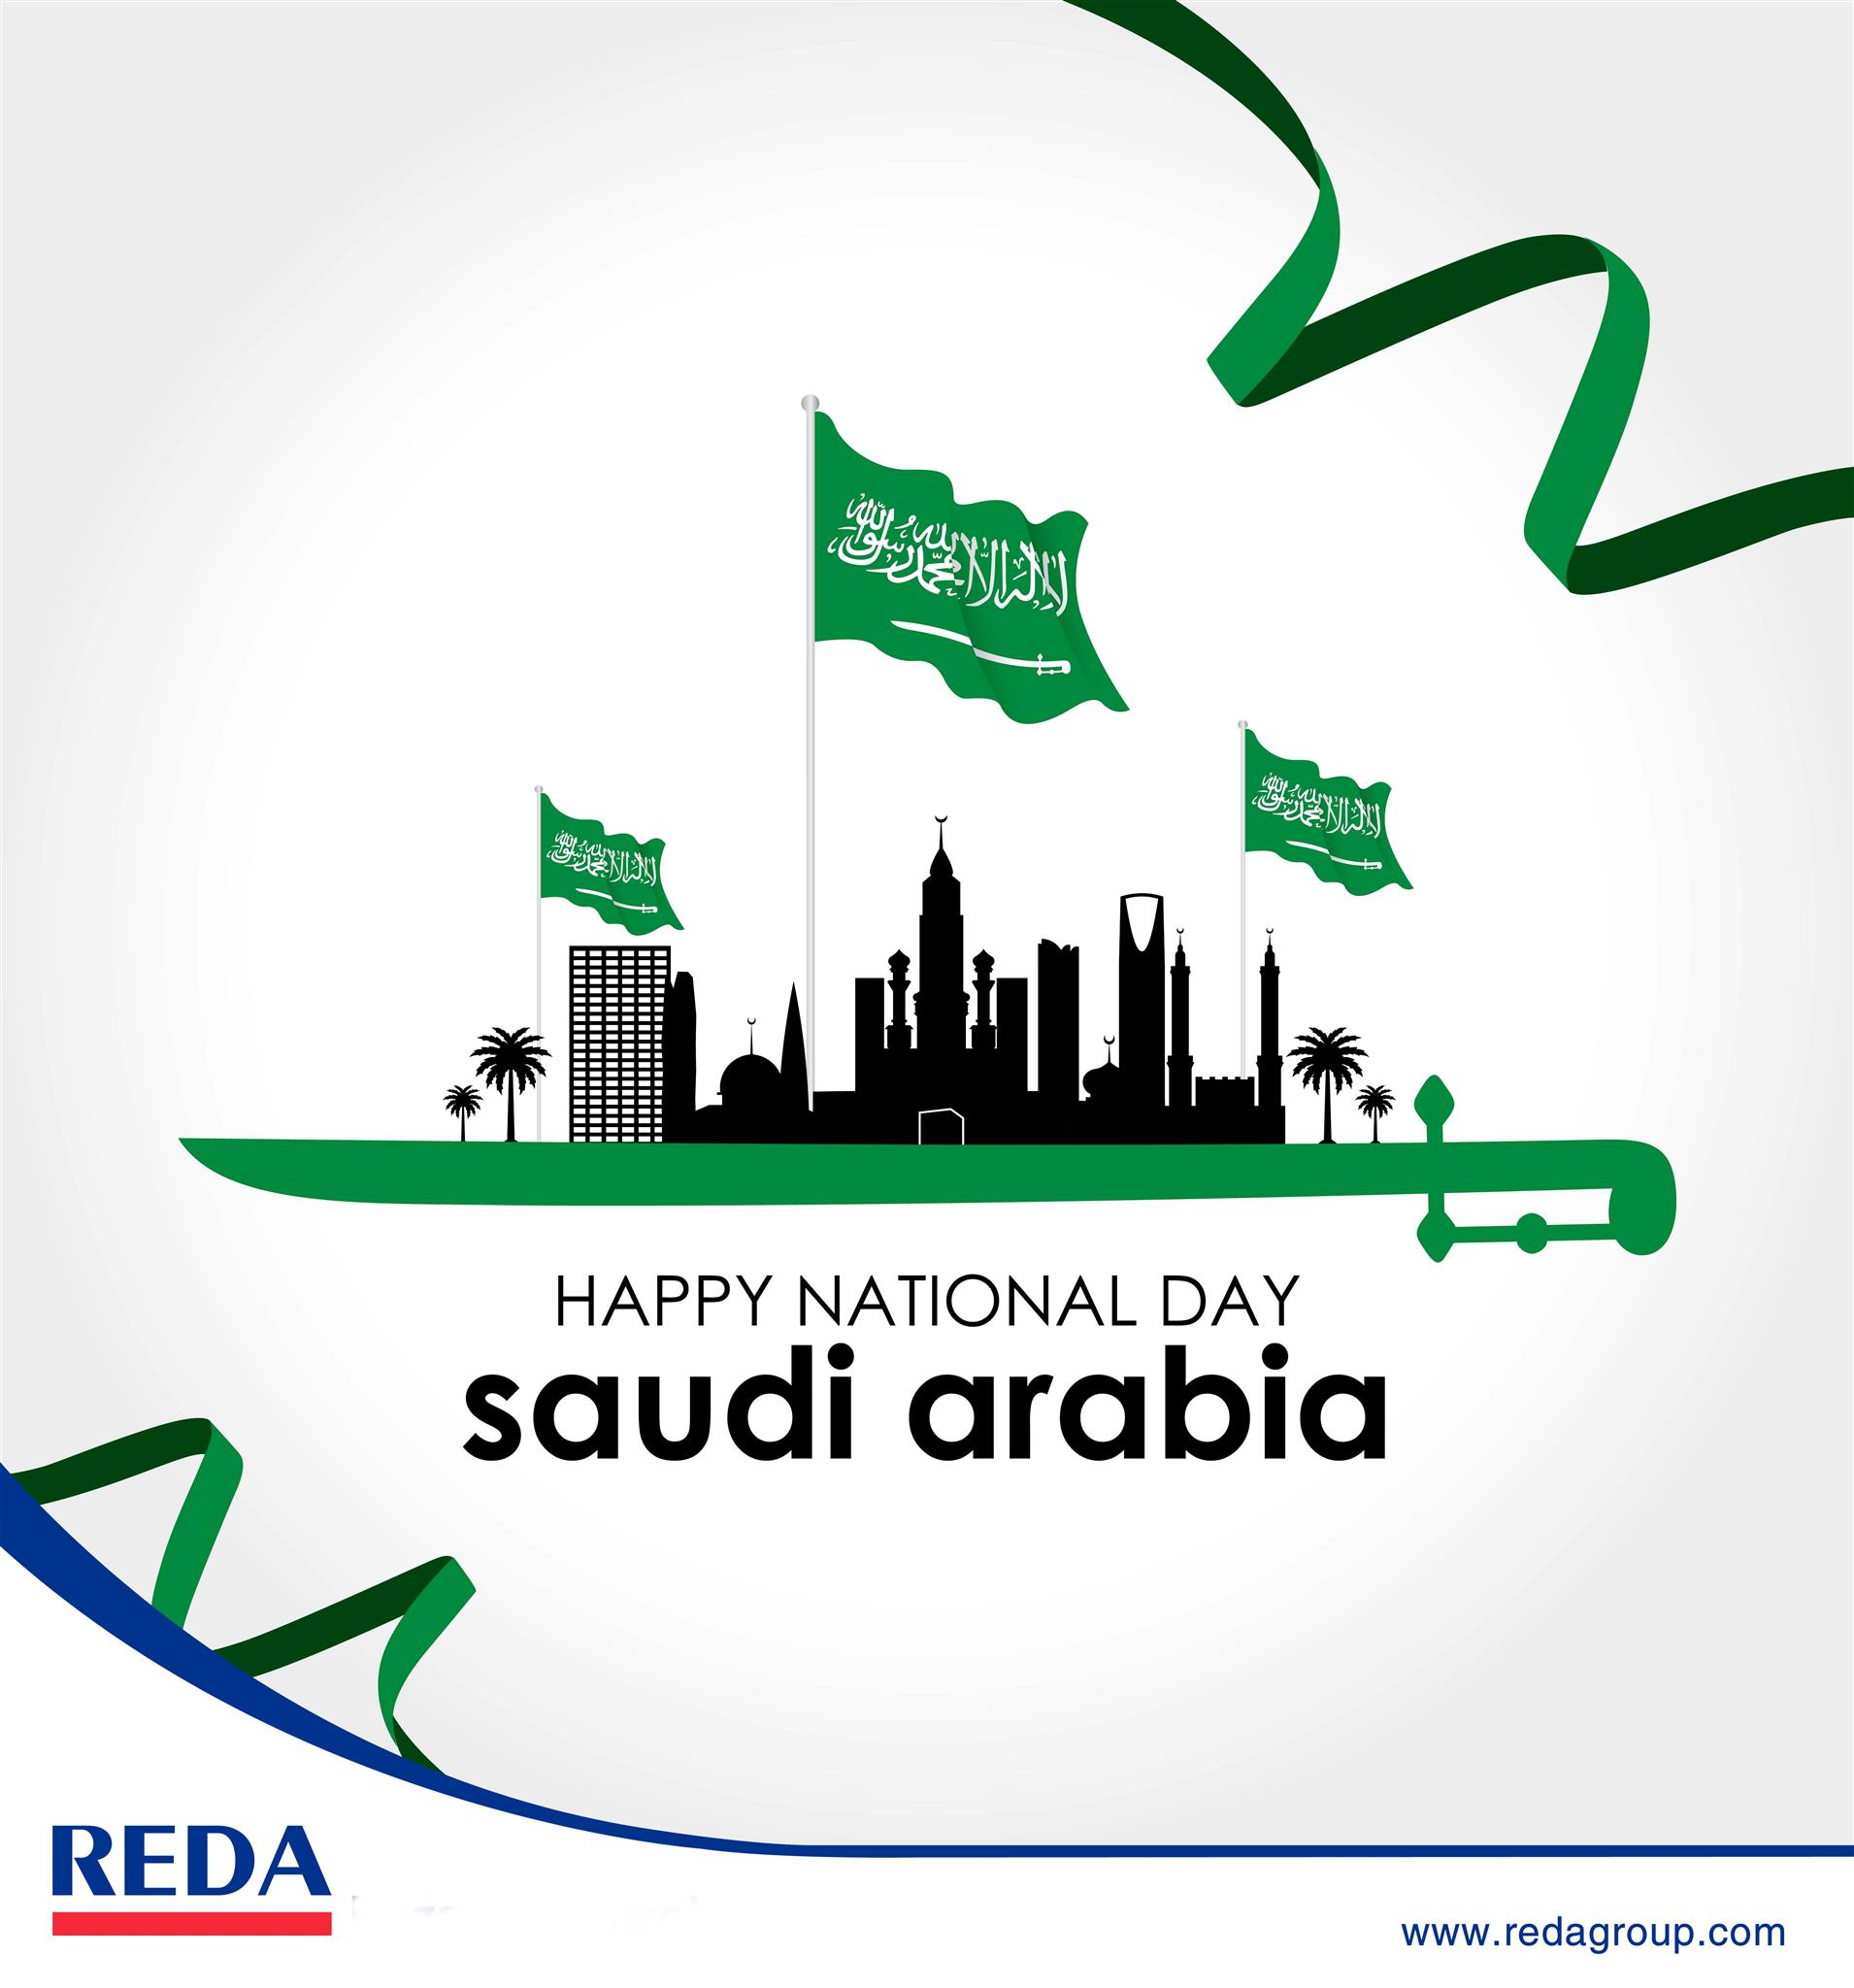 Happy National Day Saudi Arabia